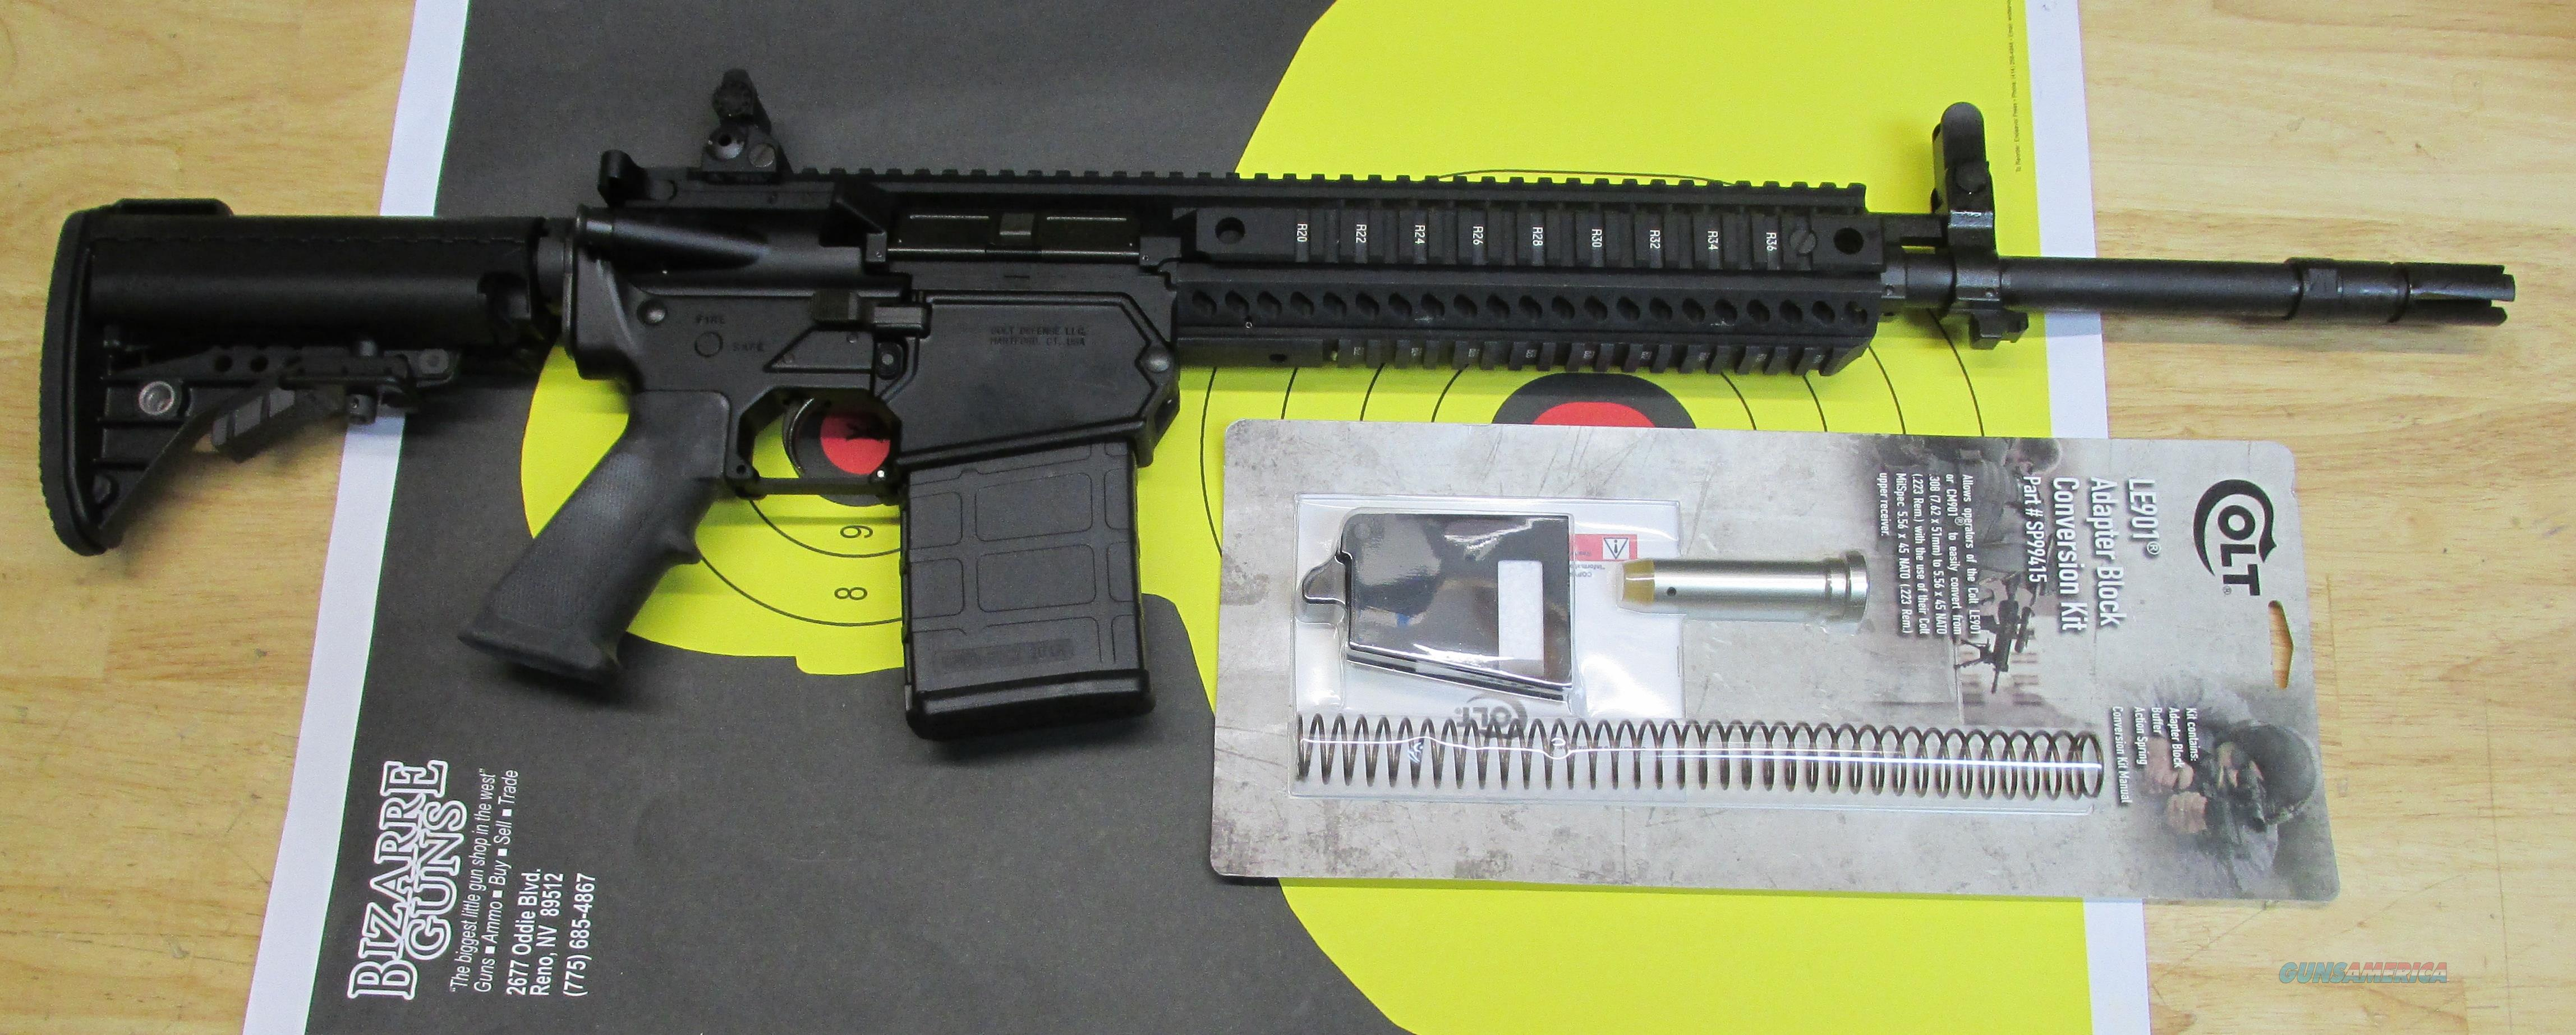 "COLT LE901 .308 WIN RIFLE WITH 5.56 NATO CONVERSION KIT, 20 RD MAGAZINE, 16"" BARREL  Guns > Rifles > Colt Military/Tactical Rifles"